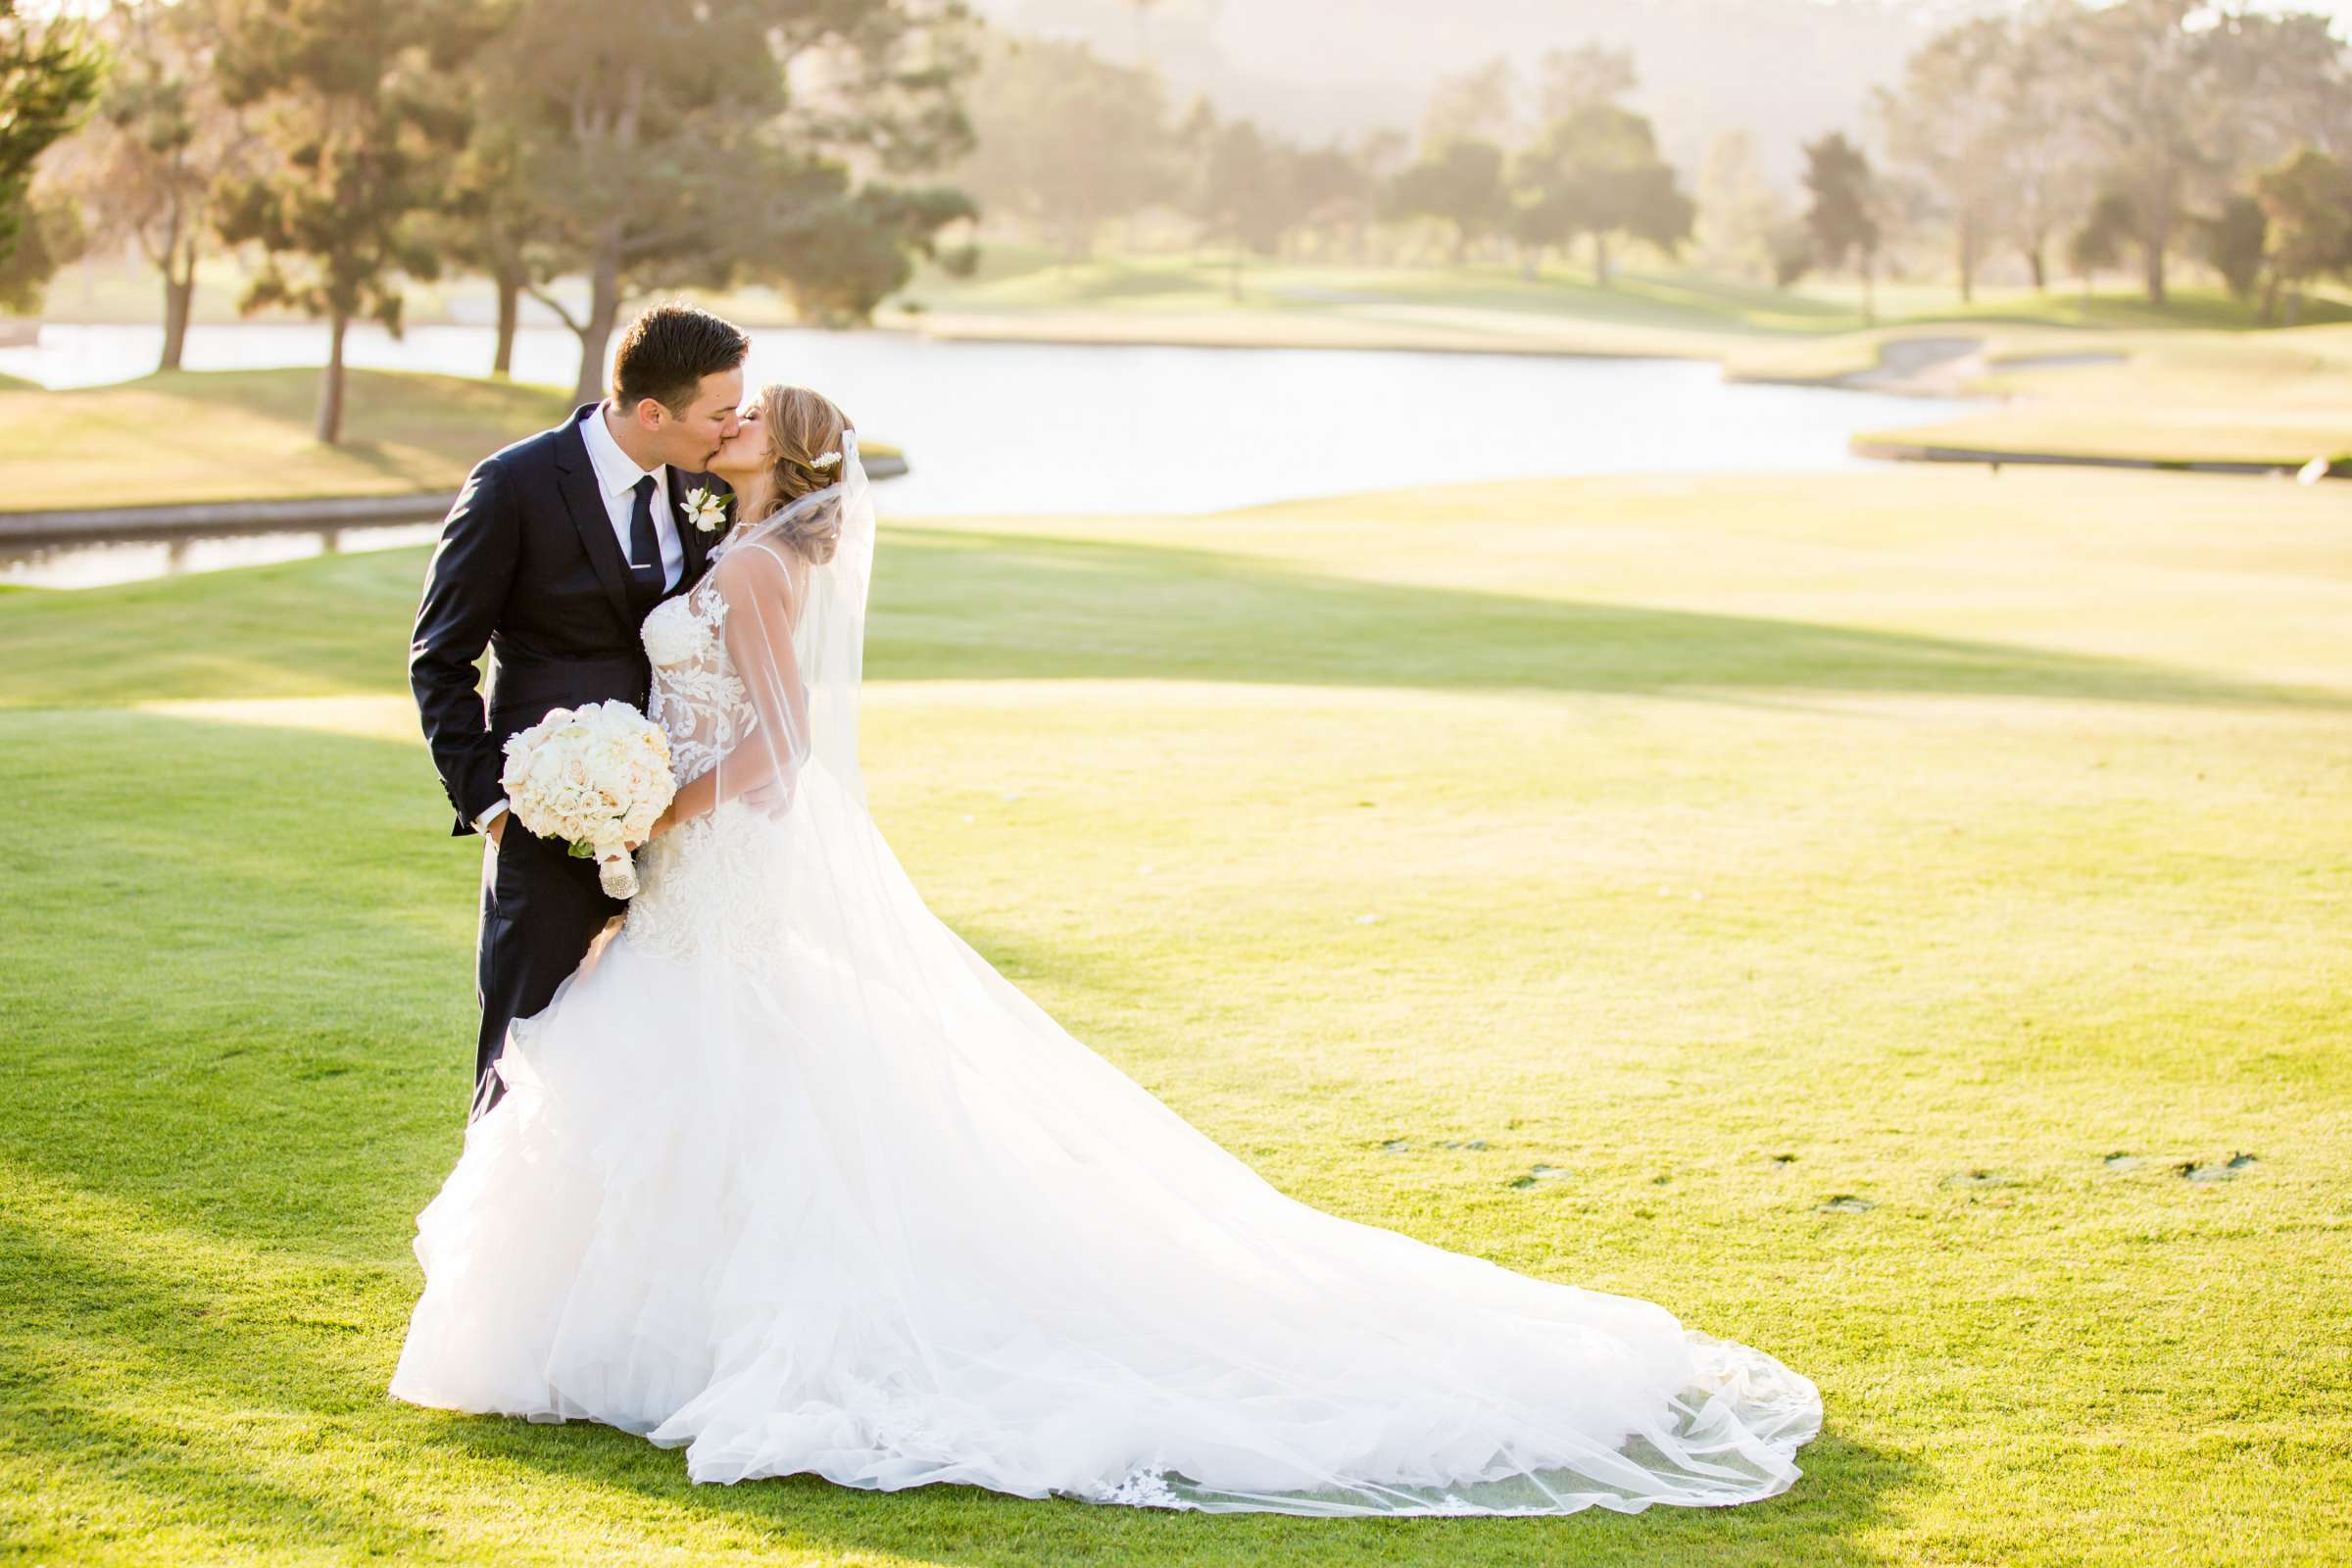 Fairbanks Ranch Country Club Wedding coordinated by Monarch Weddings, Gabriella and Kyle Wedding Photo #109 by True Photography